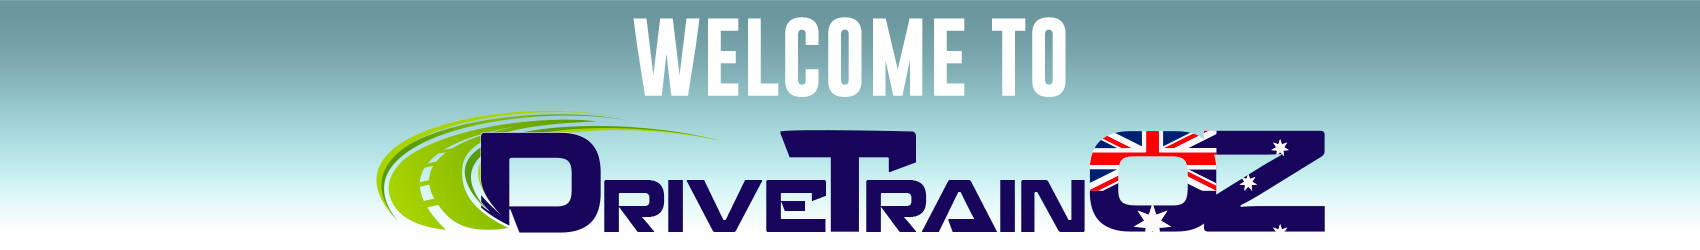 Welcome to Drivetrain Oz - Transmissions, Gearboxes, Differentials and Oil Store